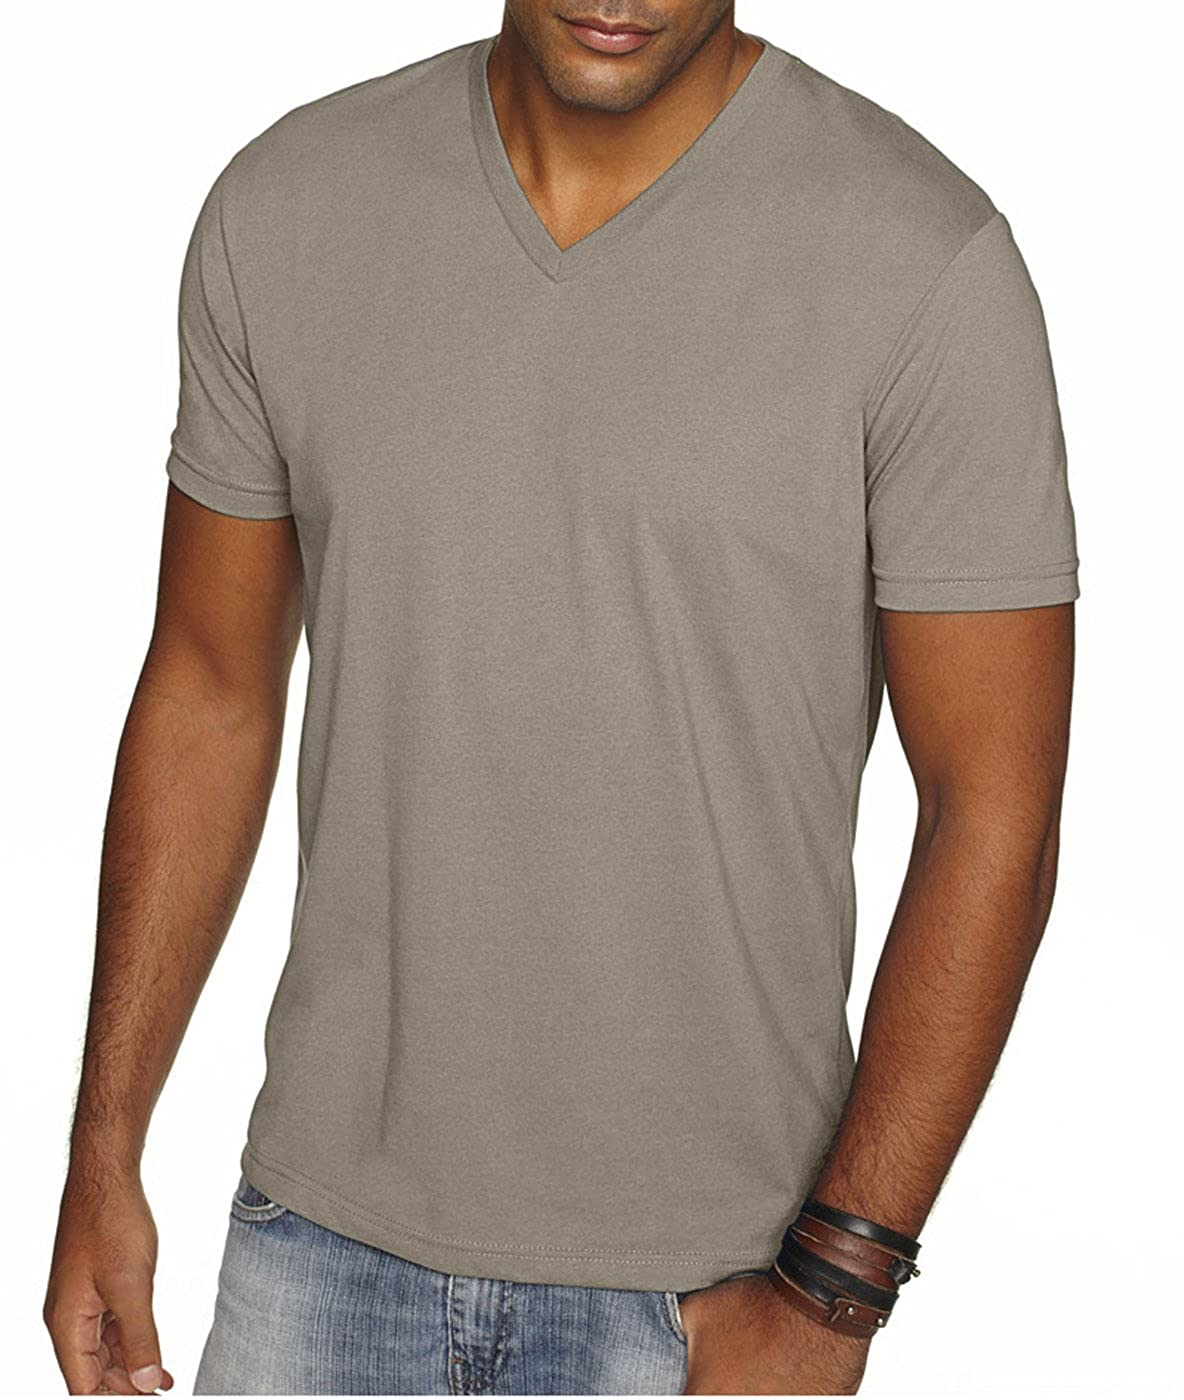 2 Shirts Cardinal Next Level Apparel 6440 Mens Premium Fitted Sueded V-Neck Tee -2 Pack Warm Grey - Large